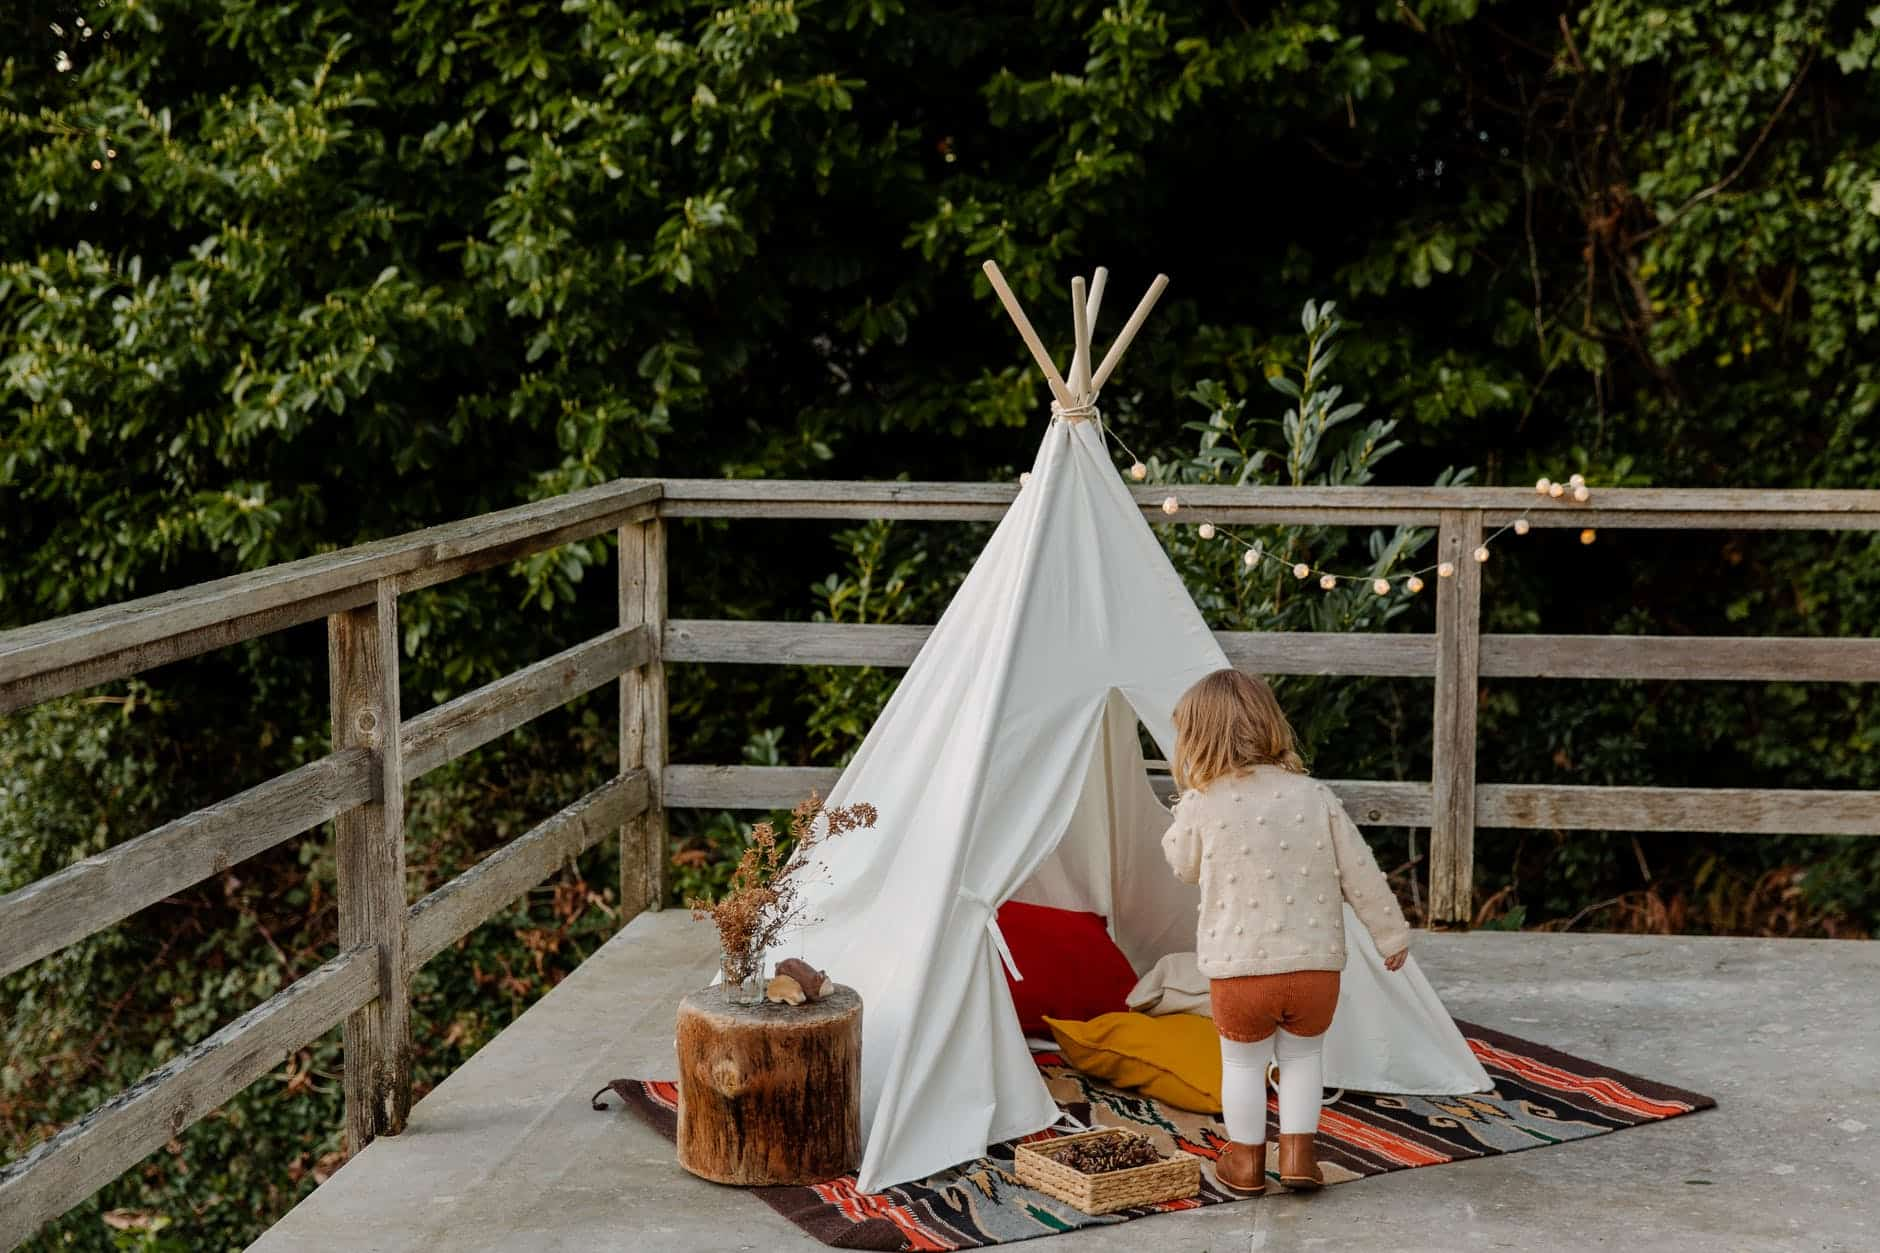 little kid coming in wigwam on terrace -  encourage your child to explore